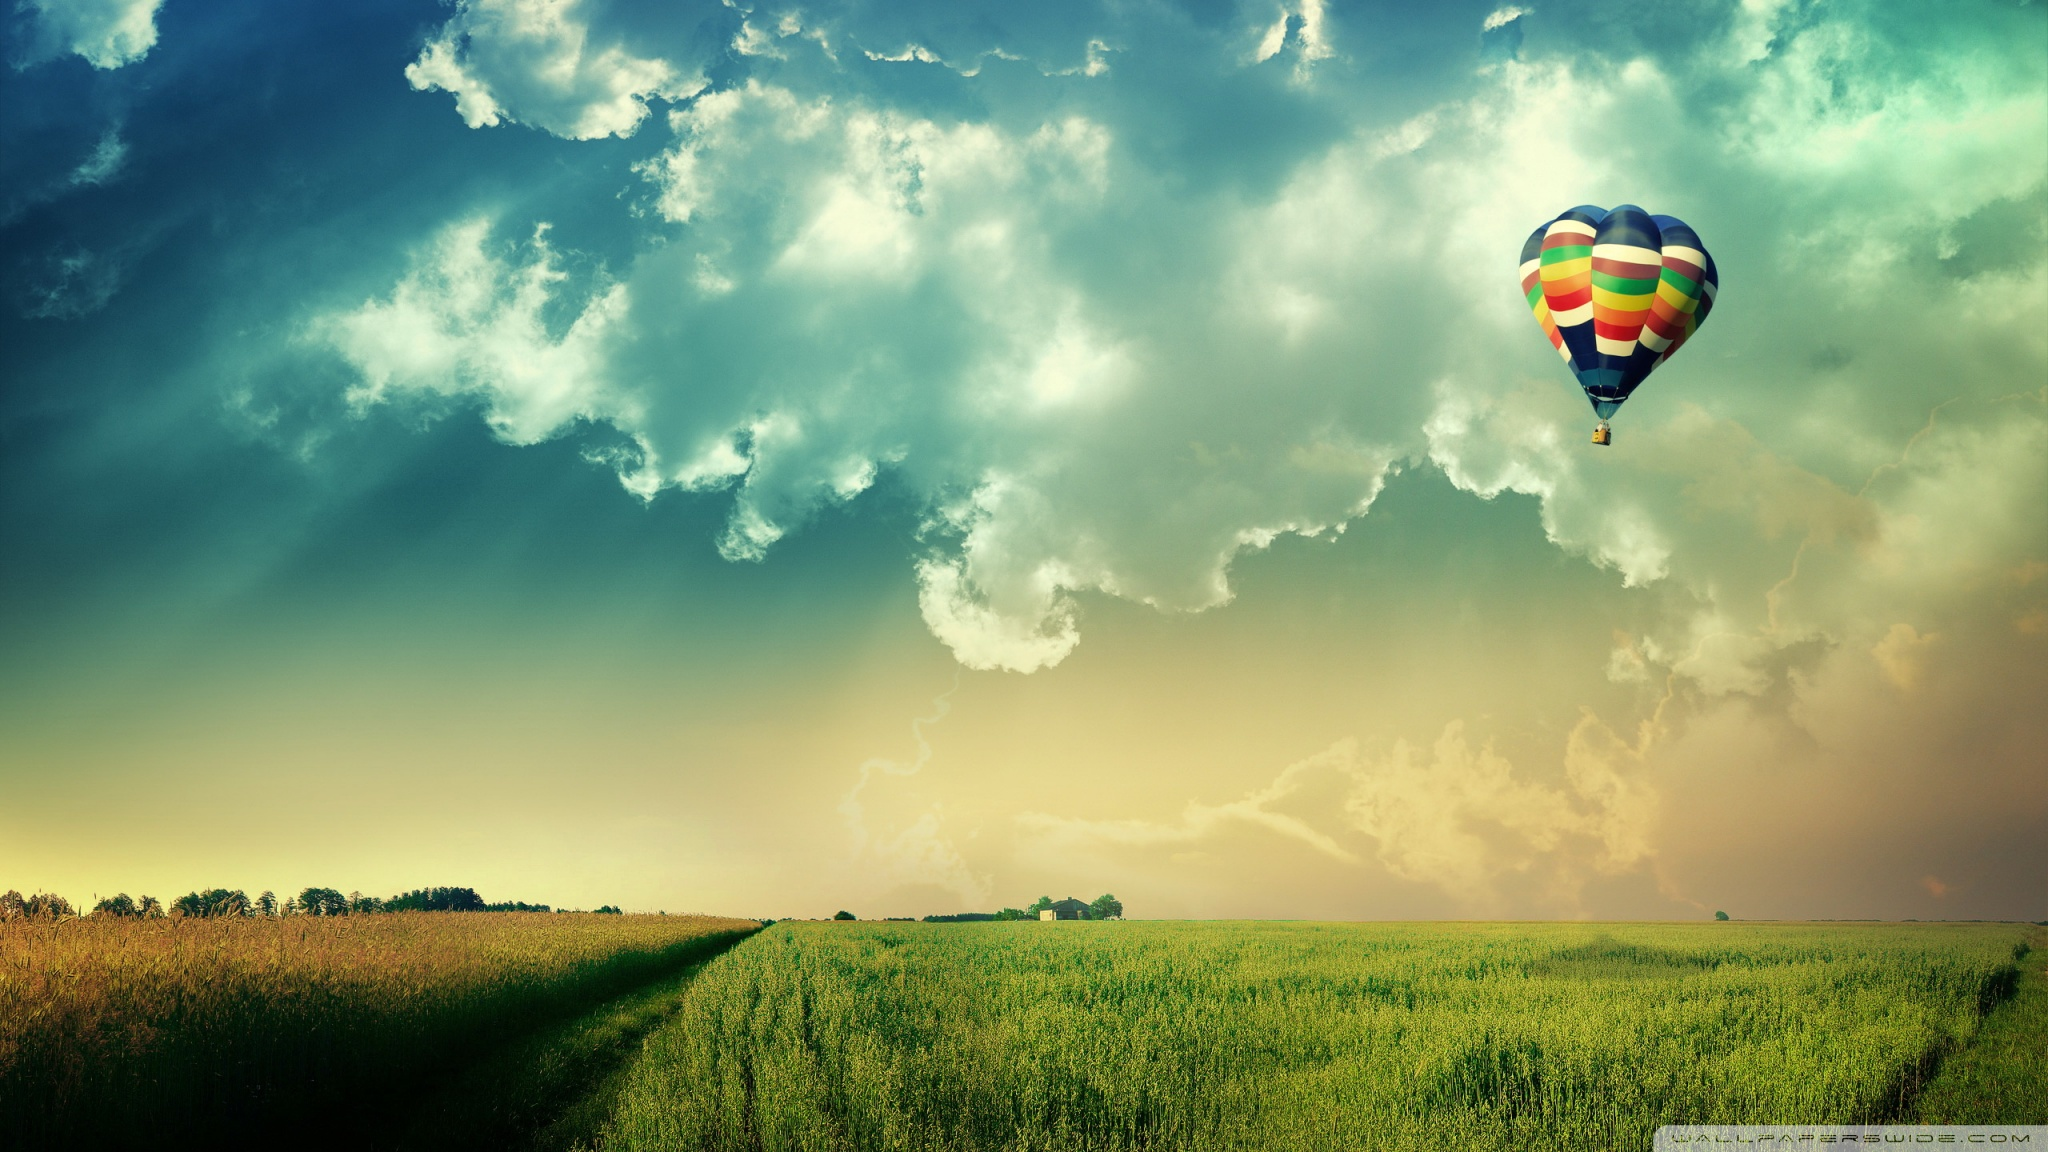 Hot Air Balloon Hd Wallpaper 2048x1152 8652